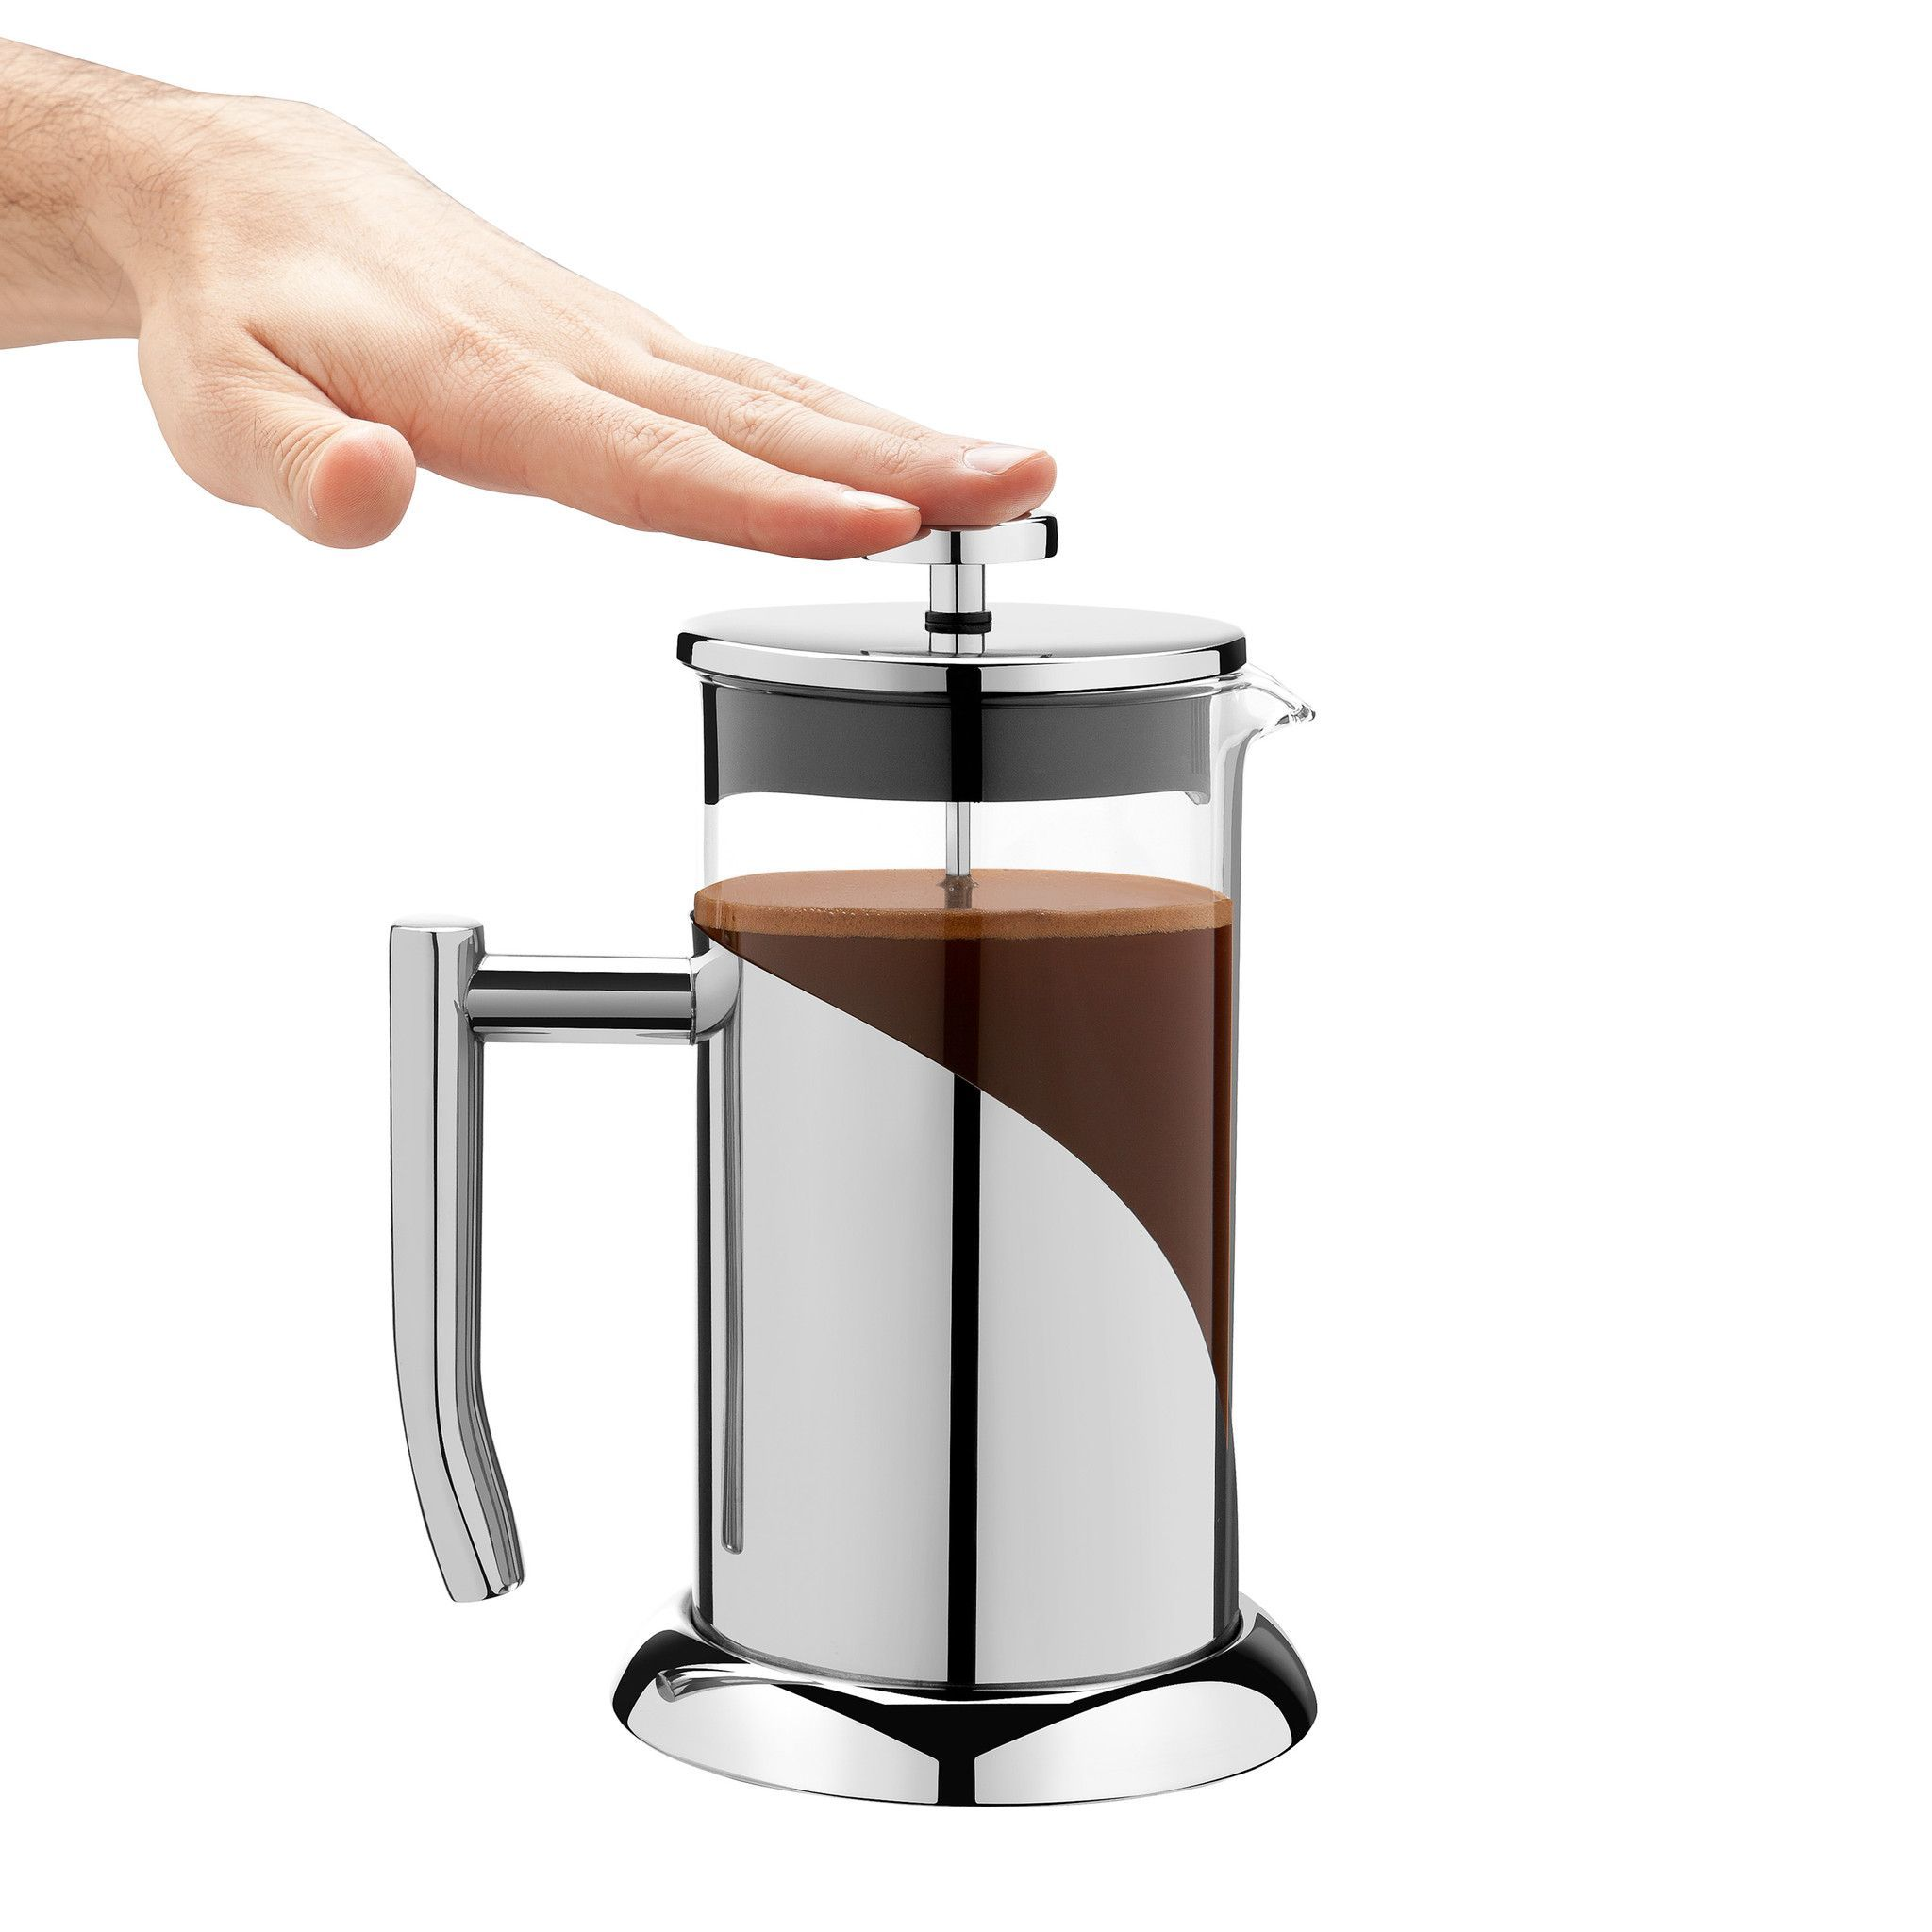 Bed bath beyond french press - French Press Coffee Maker Angelica French Style Coffee Tea Press